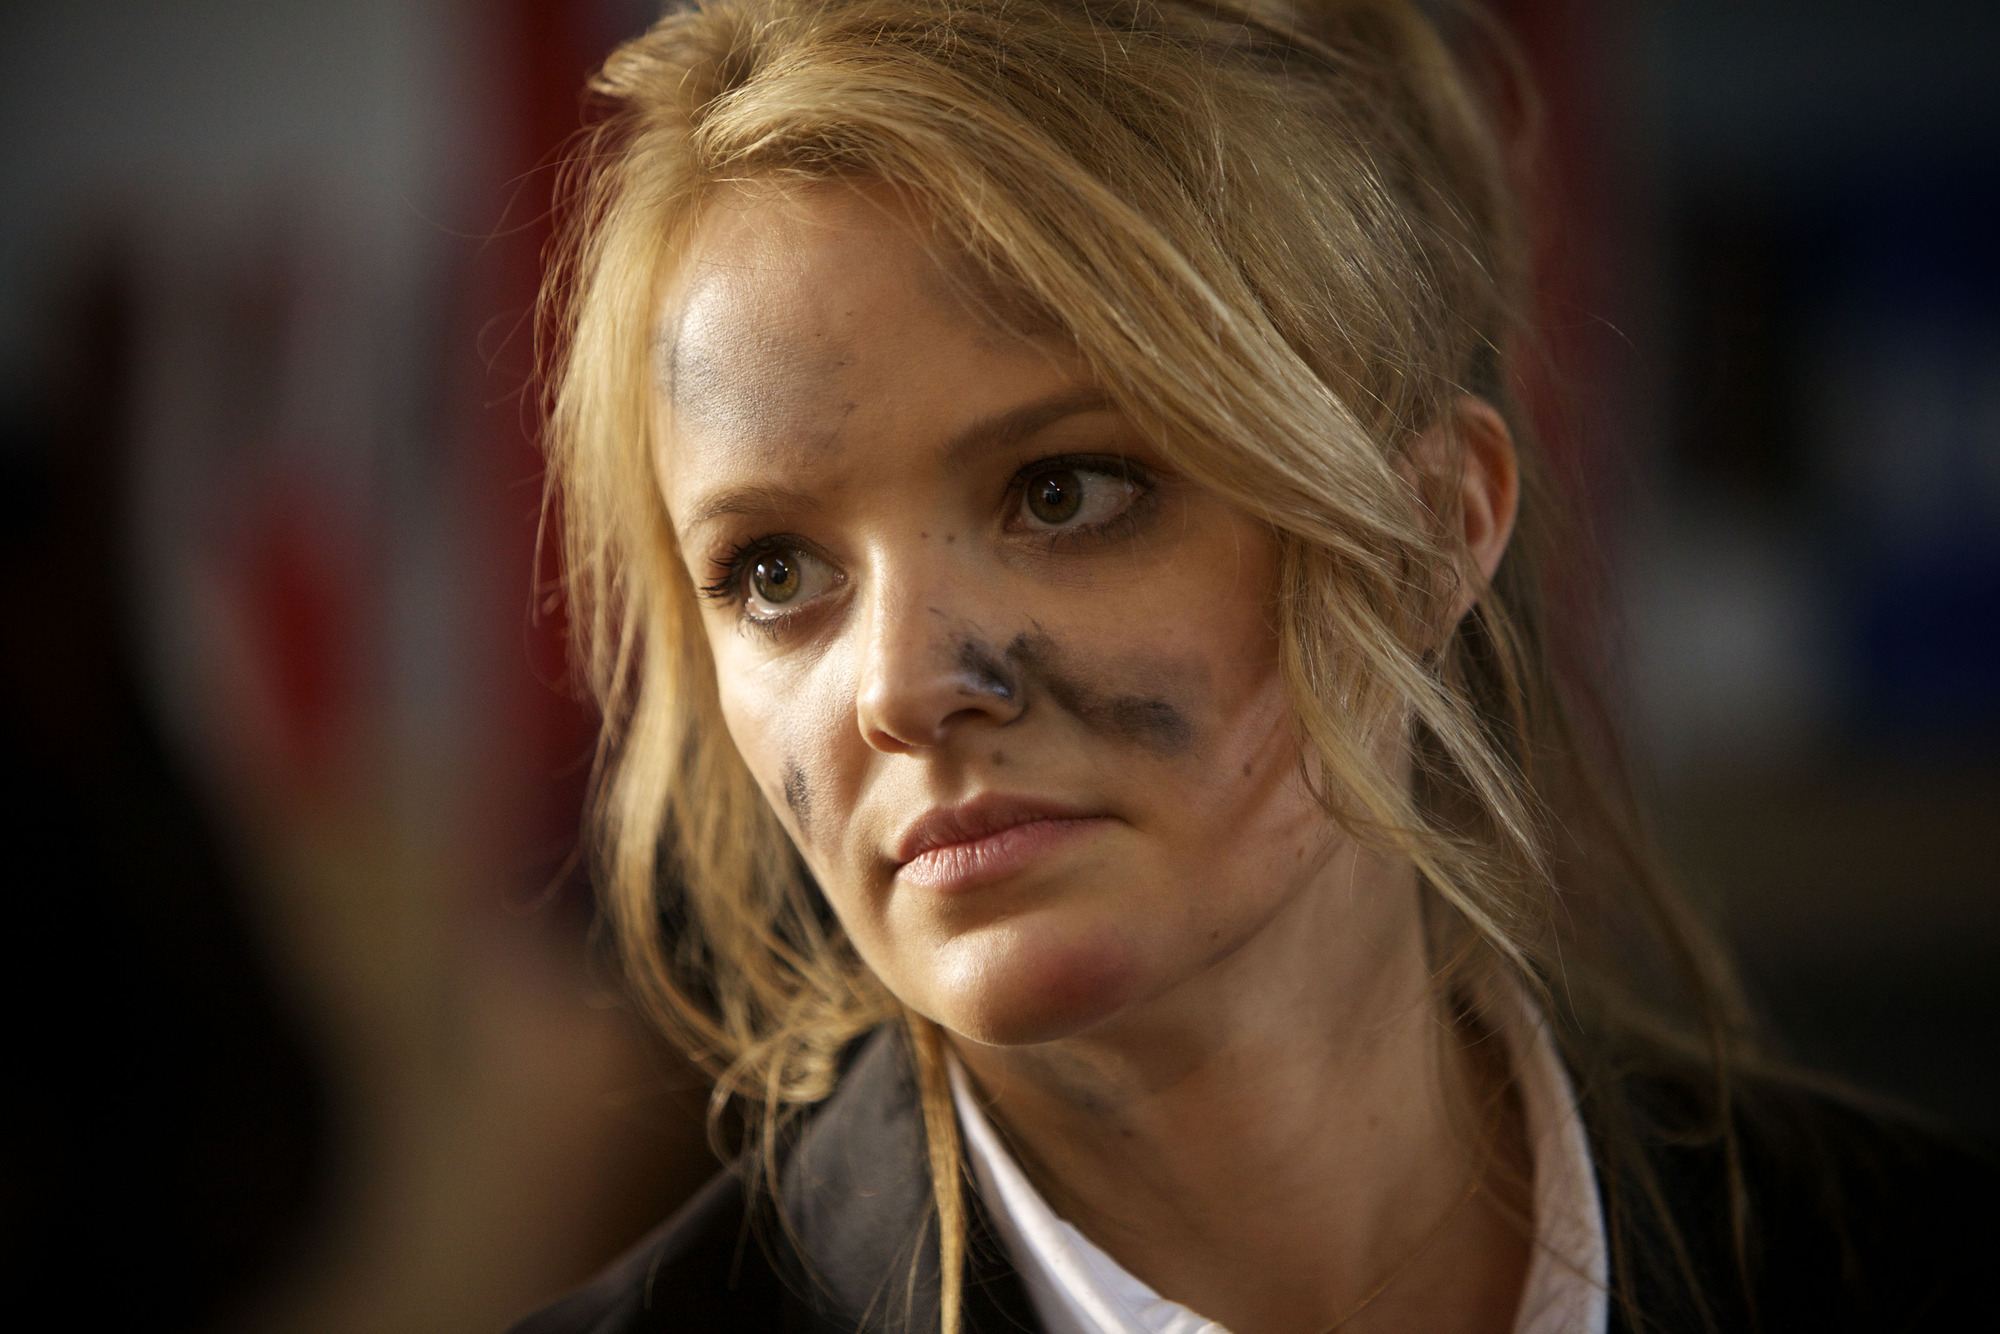 Waterloo Road final series continues: 11 teasers from episode 11